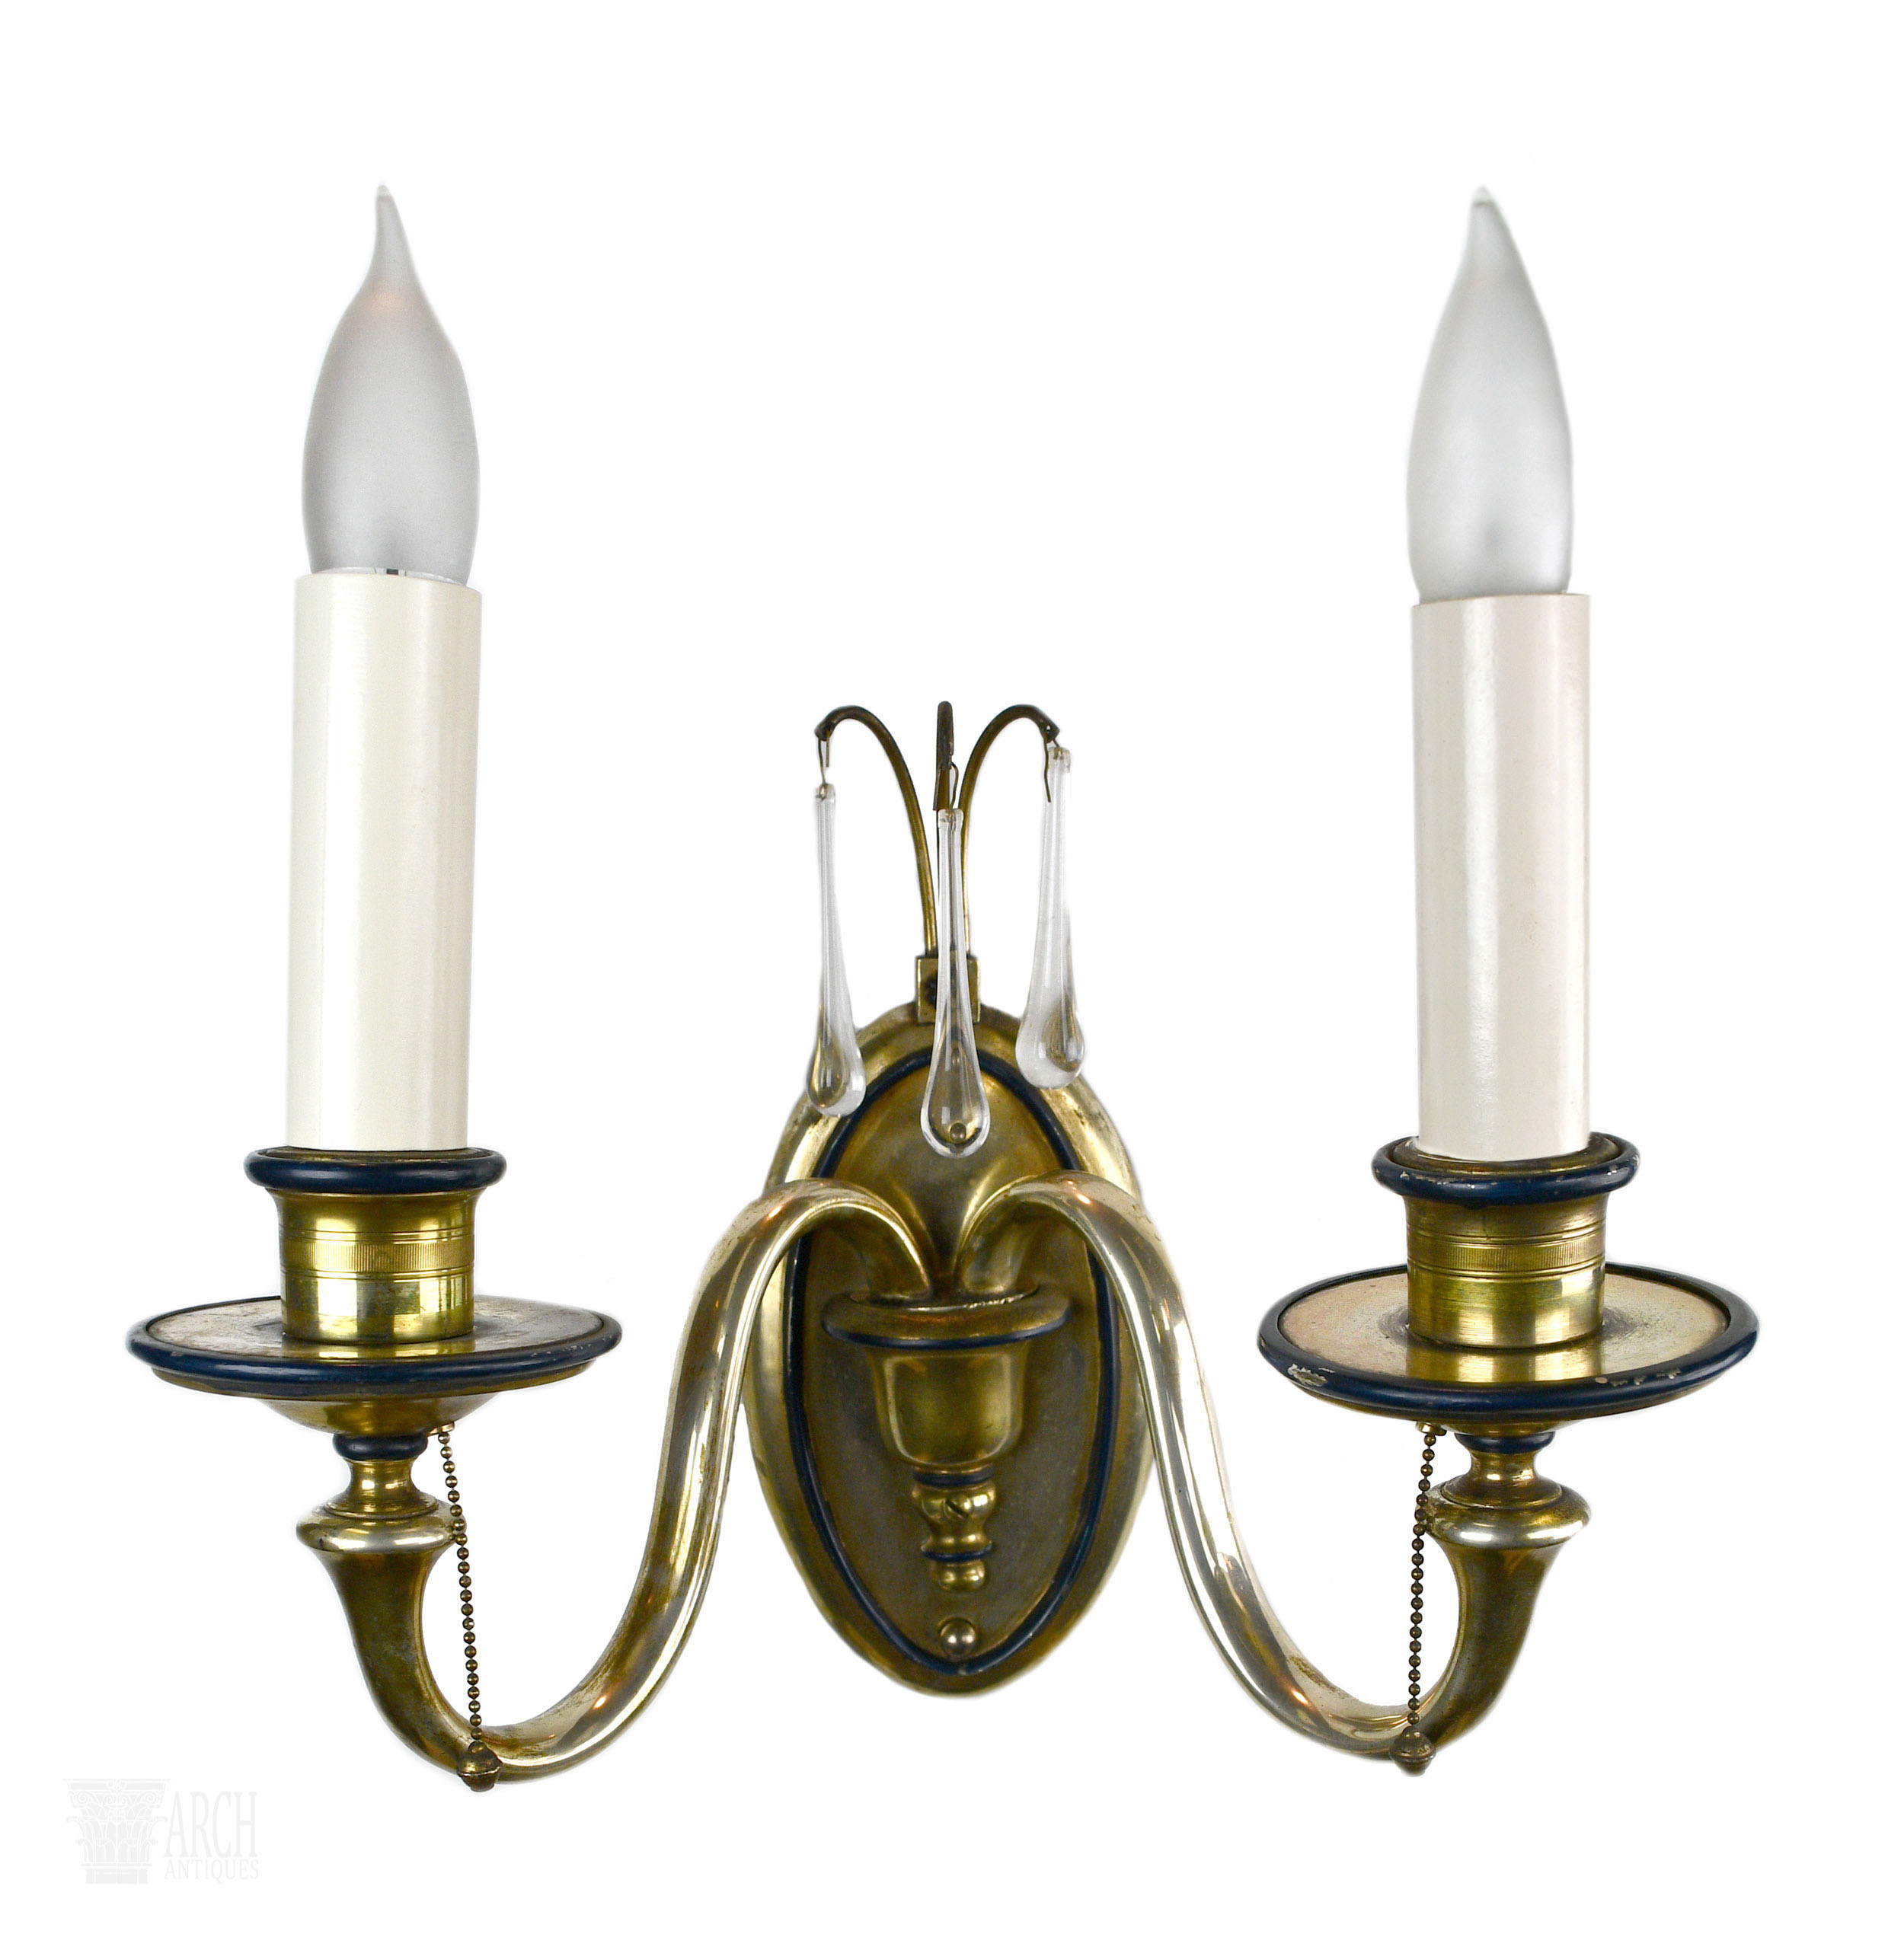 48450-silver sconce with crystal-4.jpg